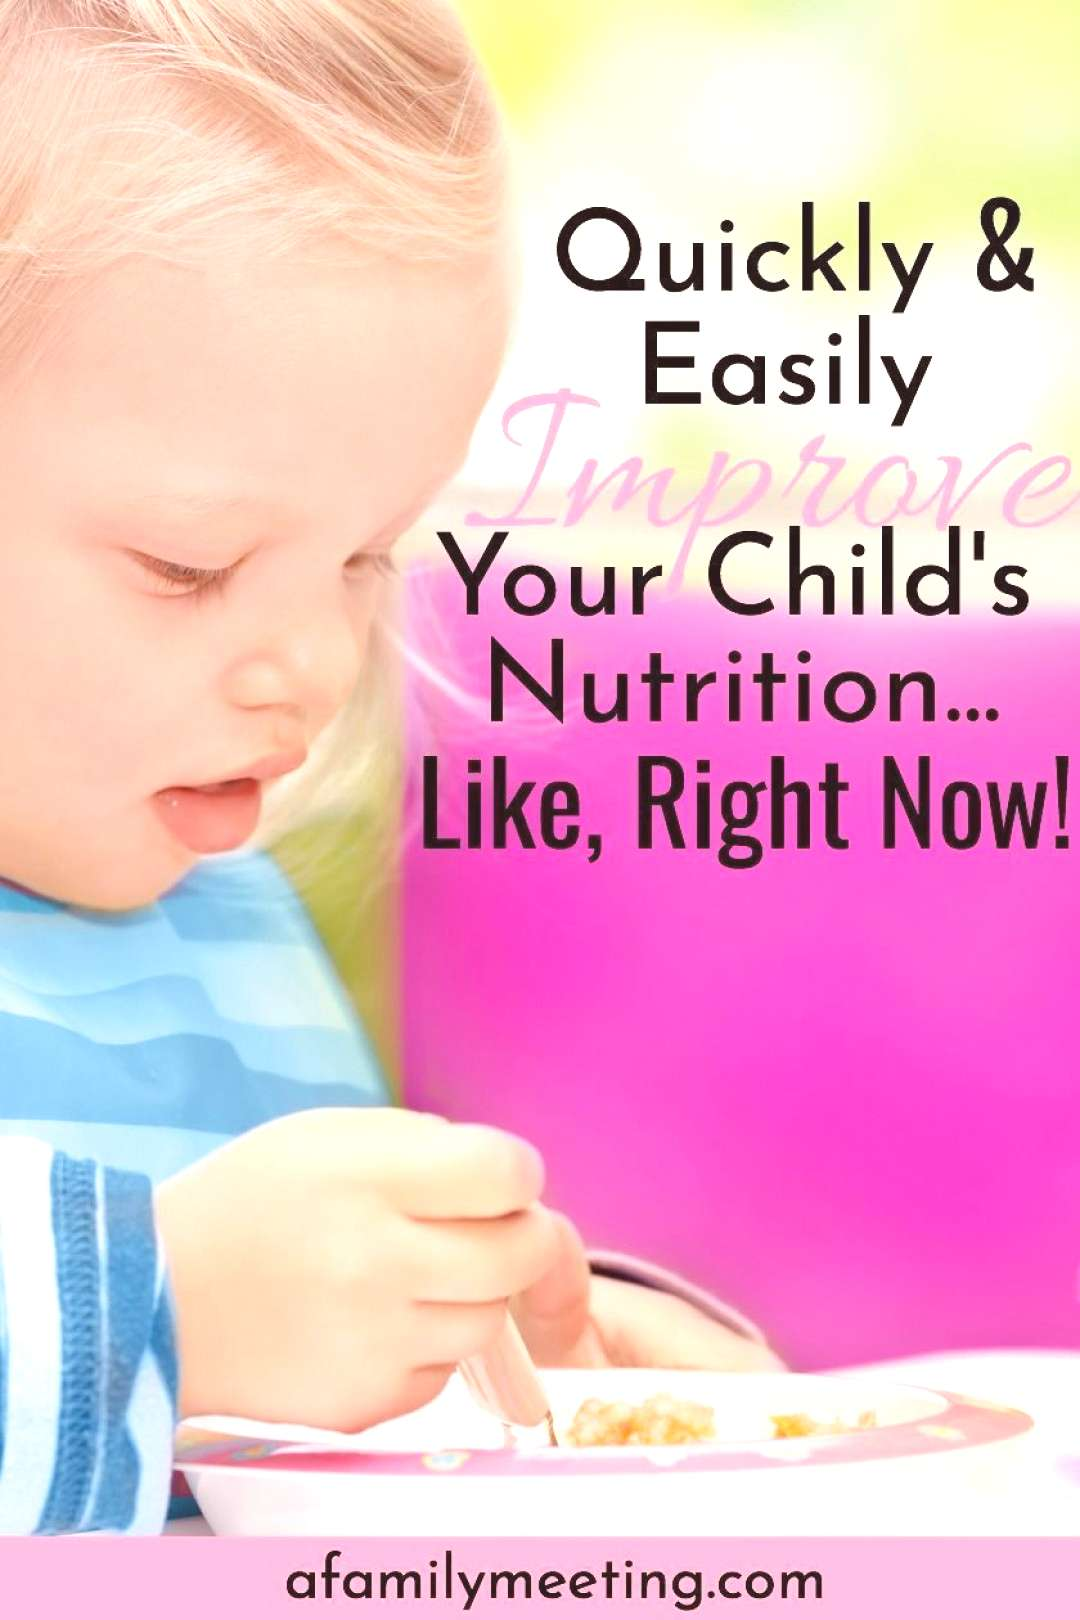 How To Improve Your Childs Nutrition Quickly and Easily You're frustrated with how to improve yo